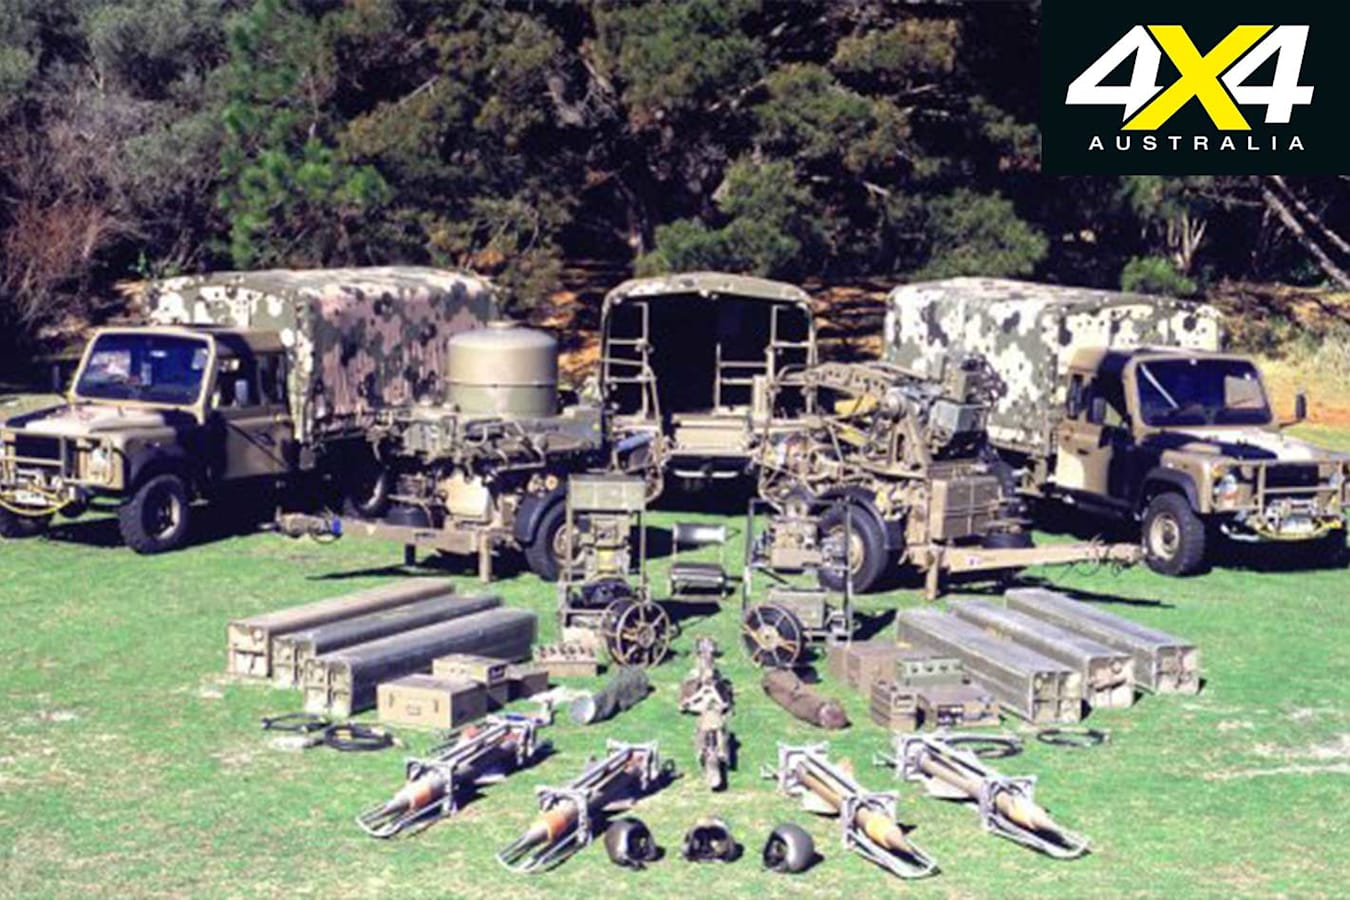 70 Years Of Land Rover 6 X 6 Military Land Rover Derivatives Jpg